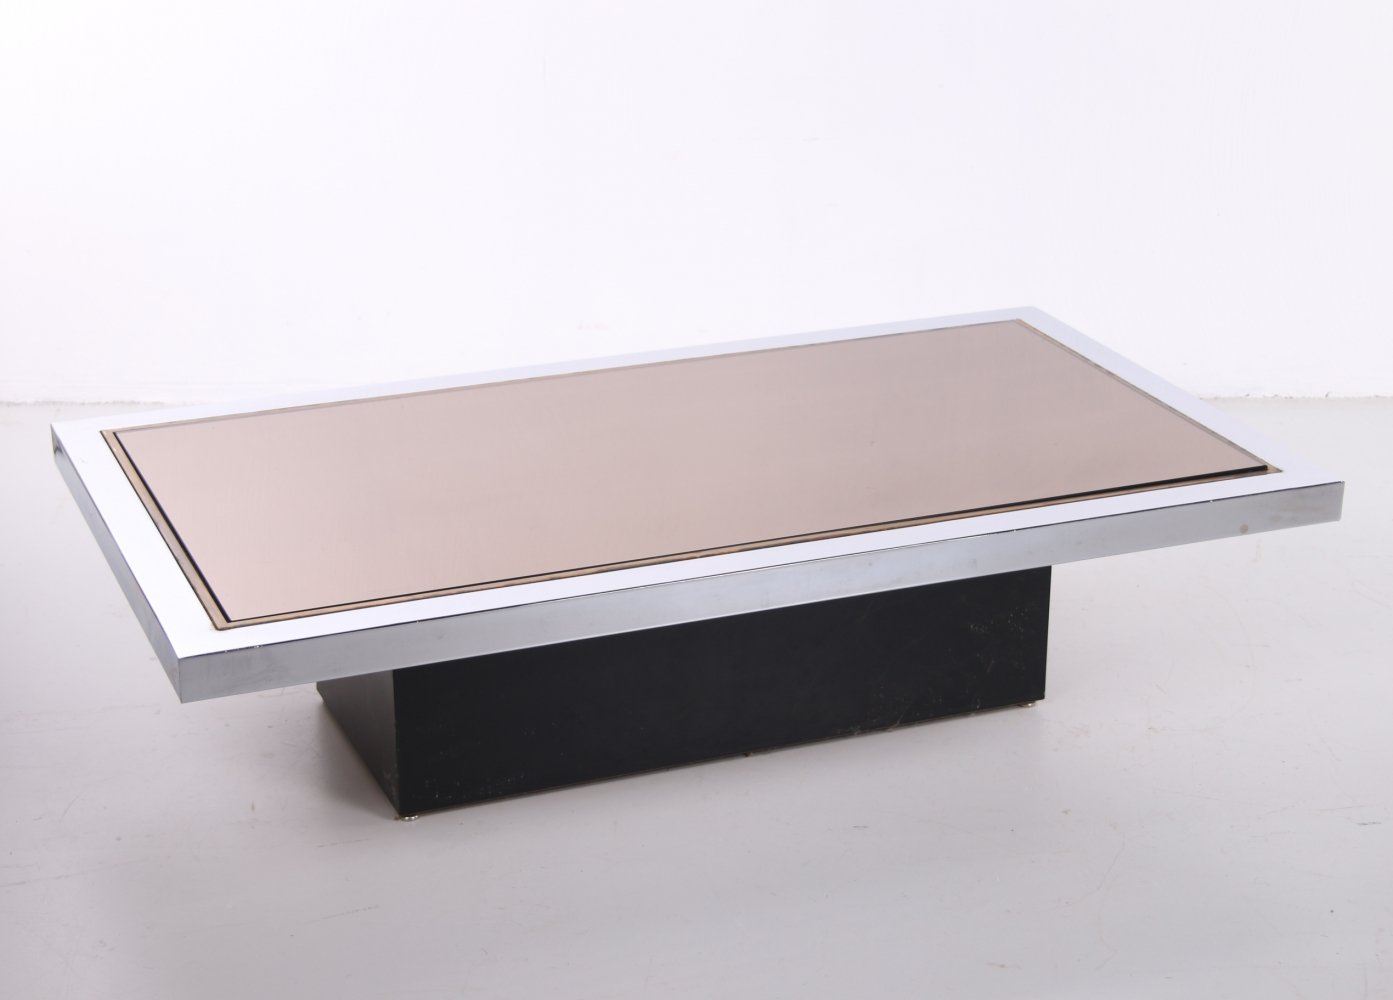 Mirrored Glass Coffee Table from Belgo Chrom / Dewulf Selection, 1970s